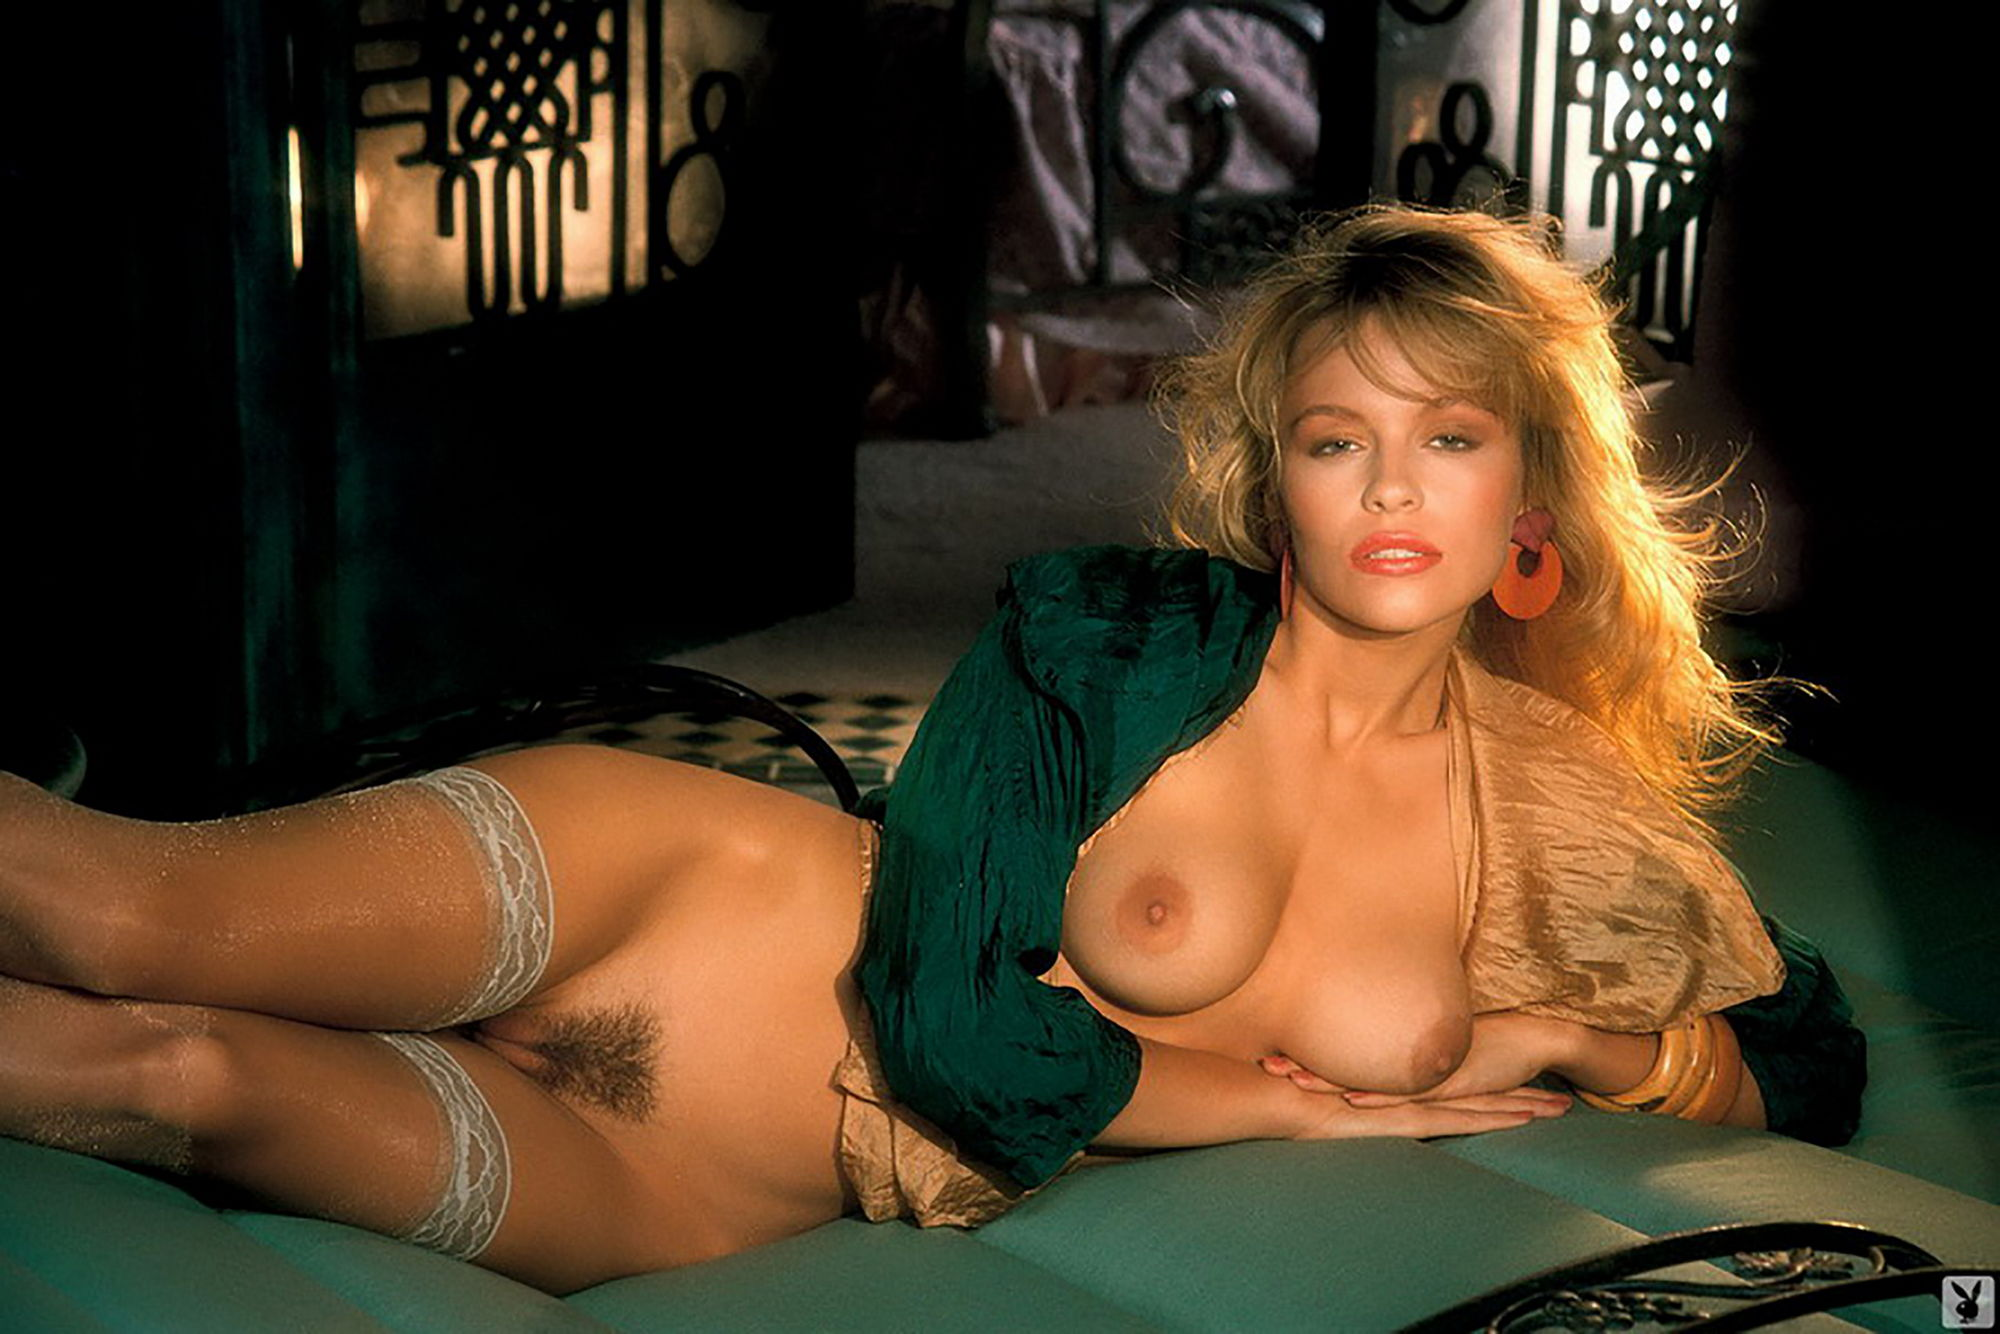 playboy-pictures-all-tv-stars-and-movies-stars